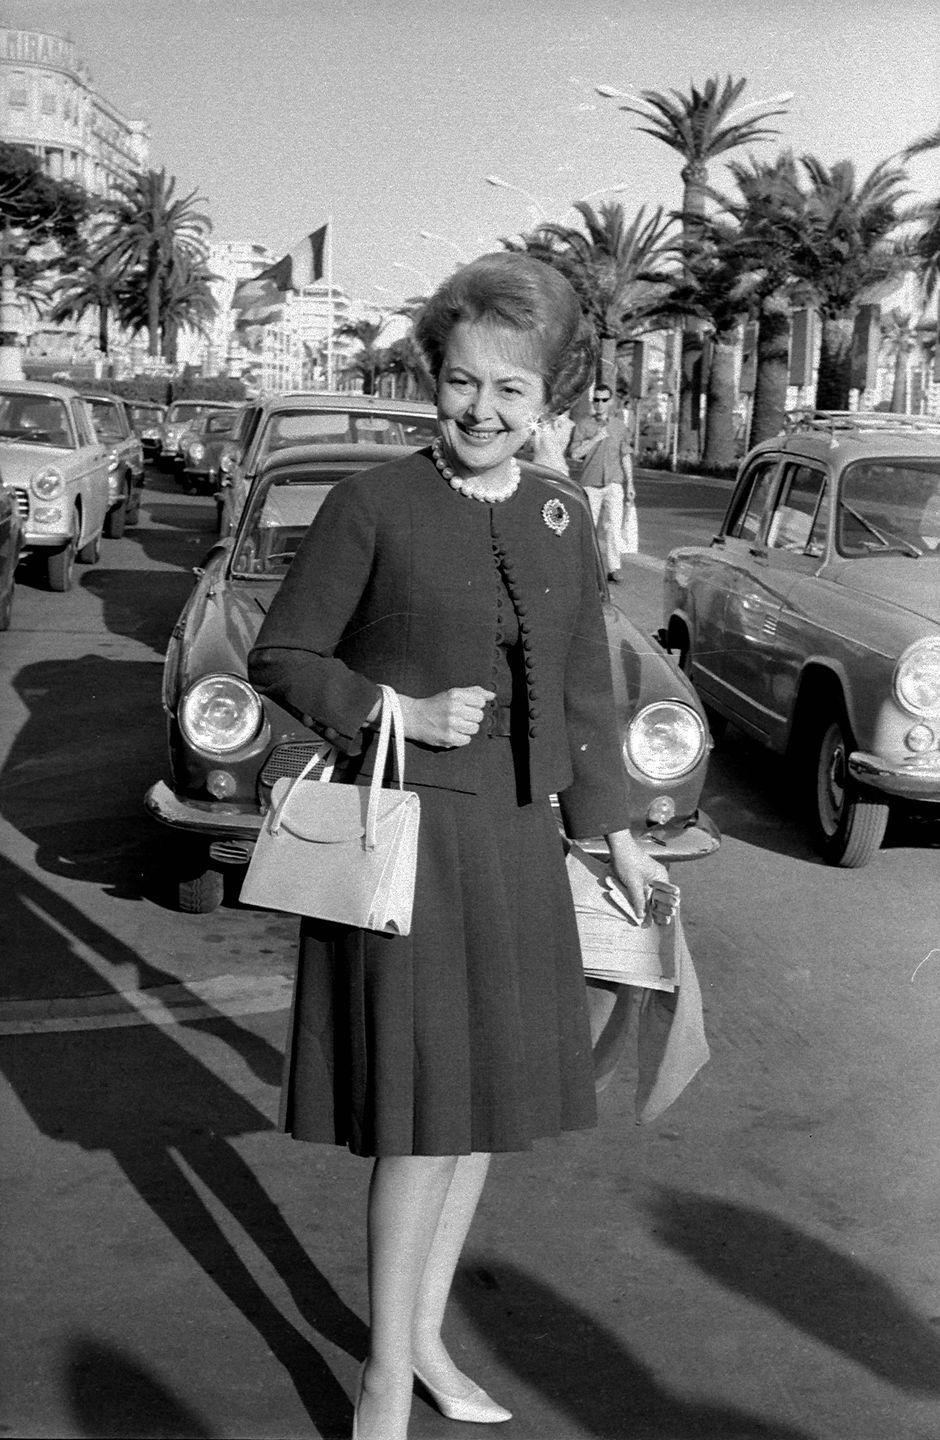 <p>Olivia showing off a rather chic outfit in 1965.</p>